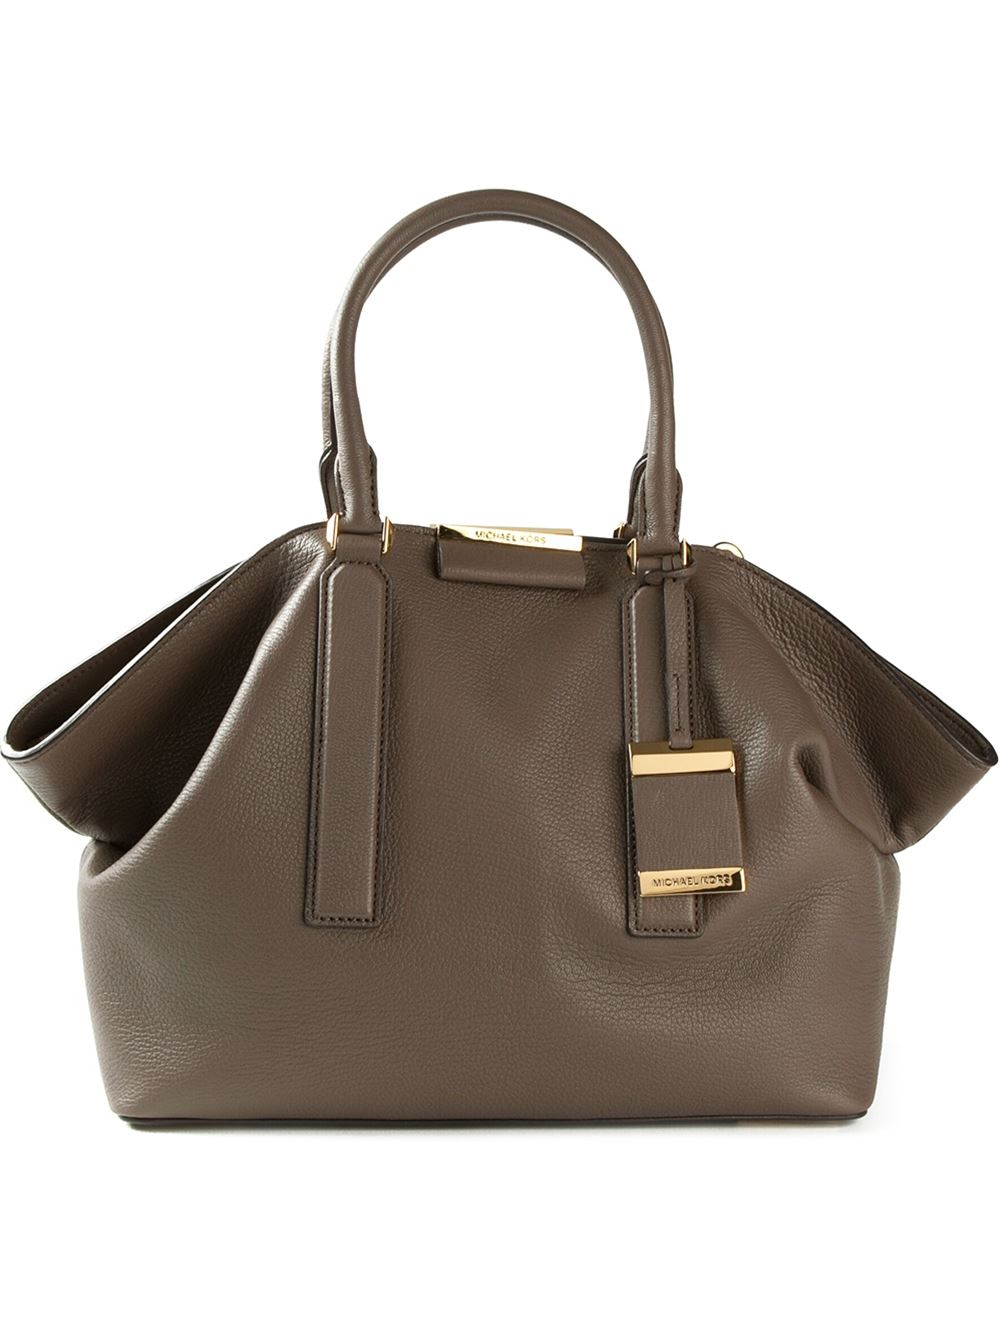 Michael Kors Large Lexi Tote Bag in Brown